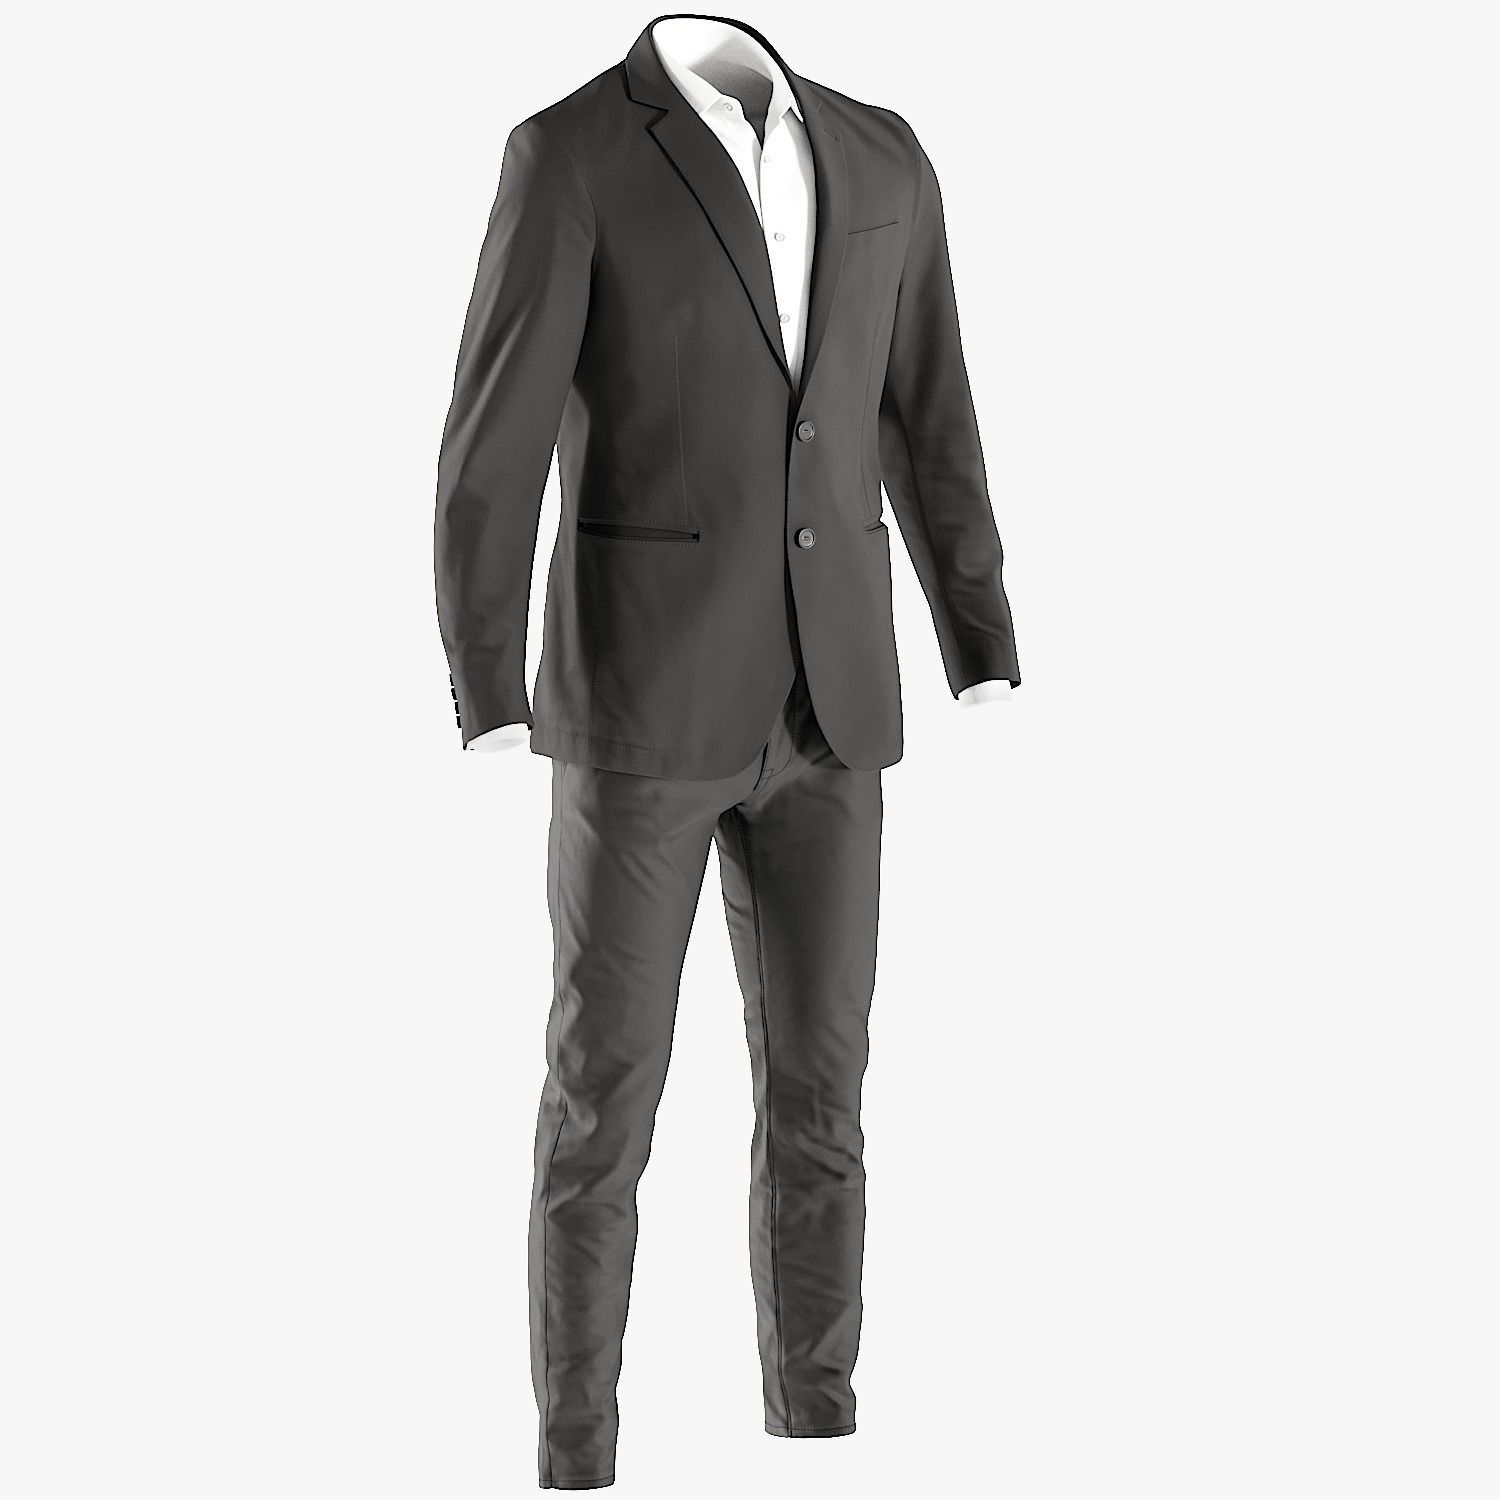 Mens Business Suit with Shirt 6